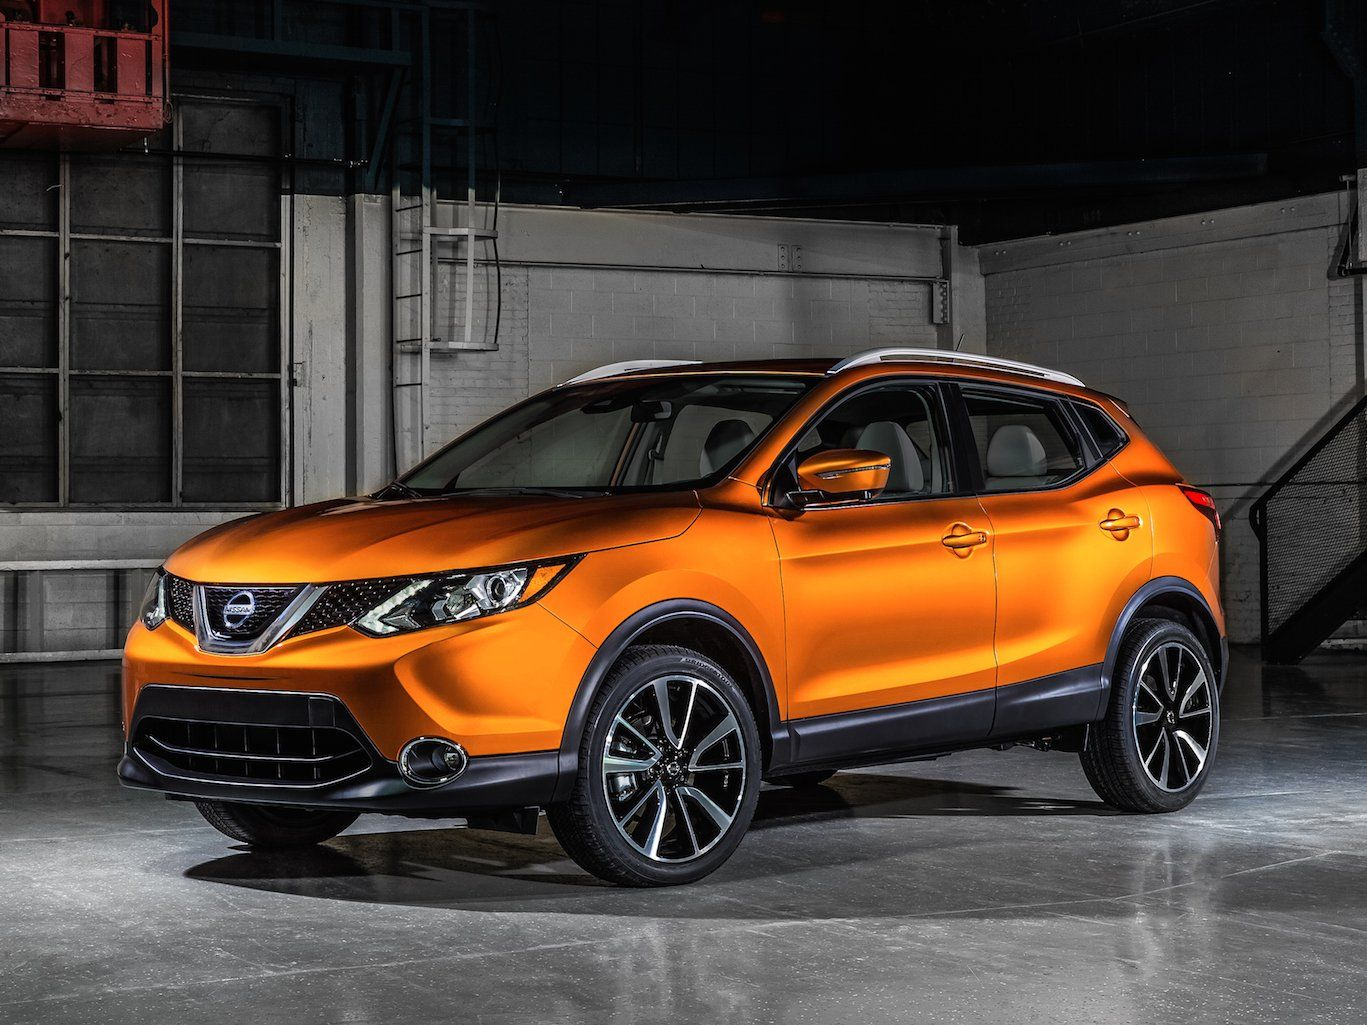 Nissan's most popular car in Europe has finally arrived in